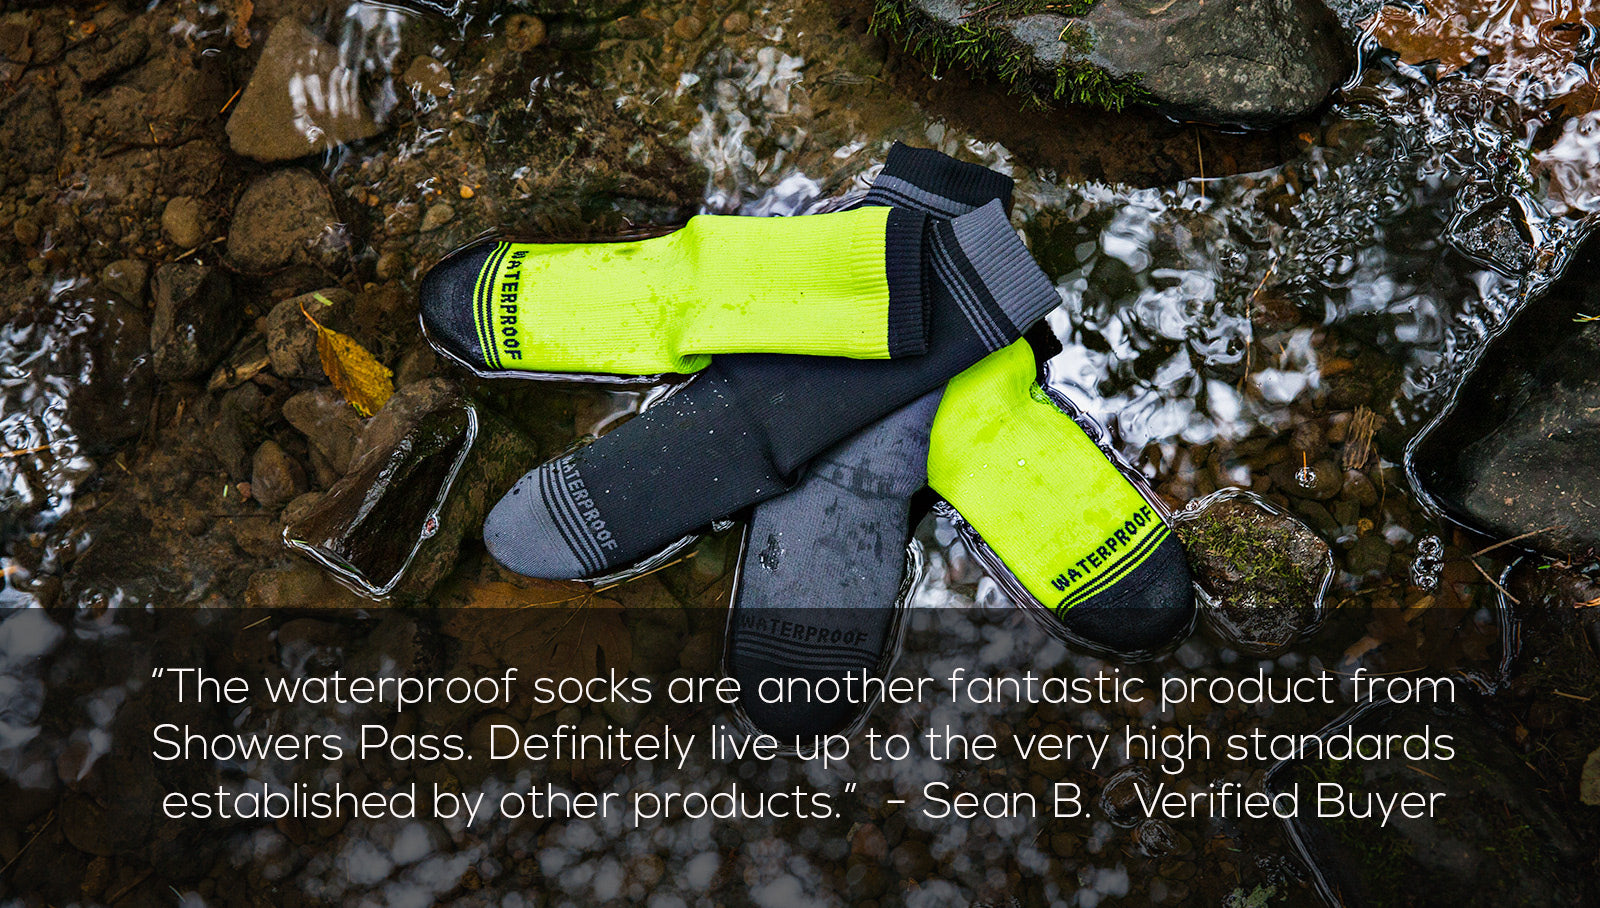 Waterproof Socks testamonial